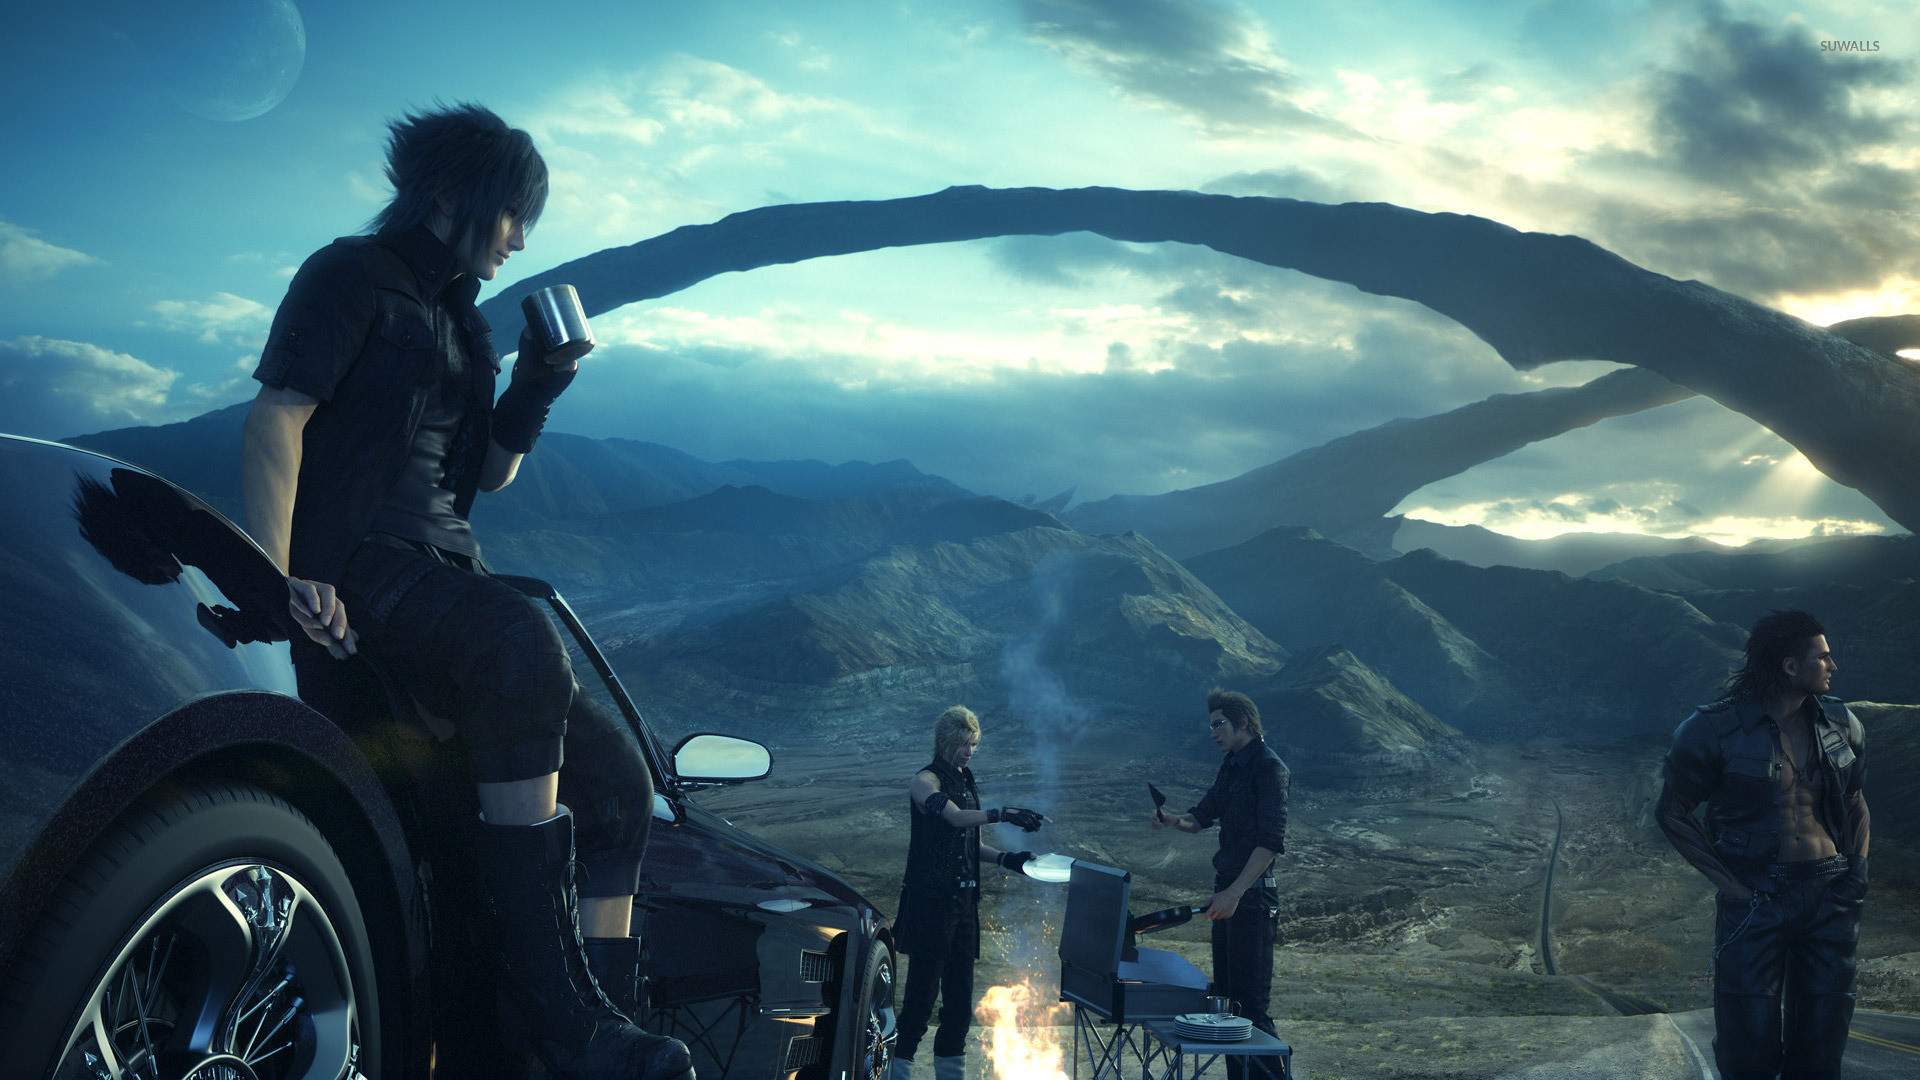 1920x1080 Final Fantasy XV [3] wallpaper